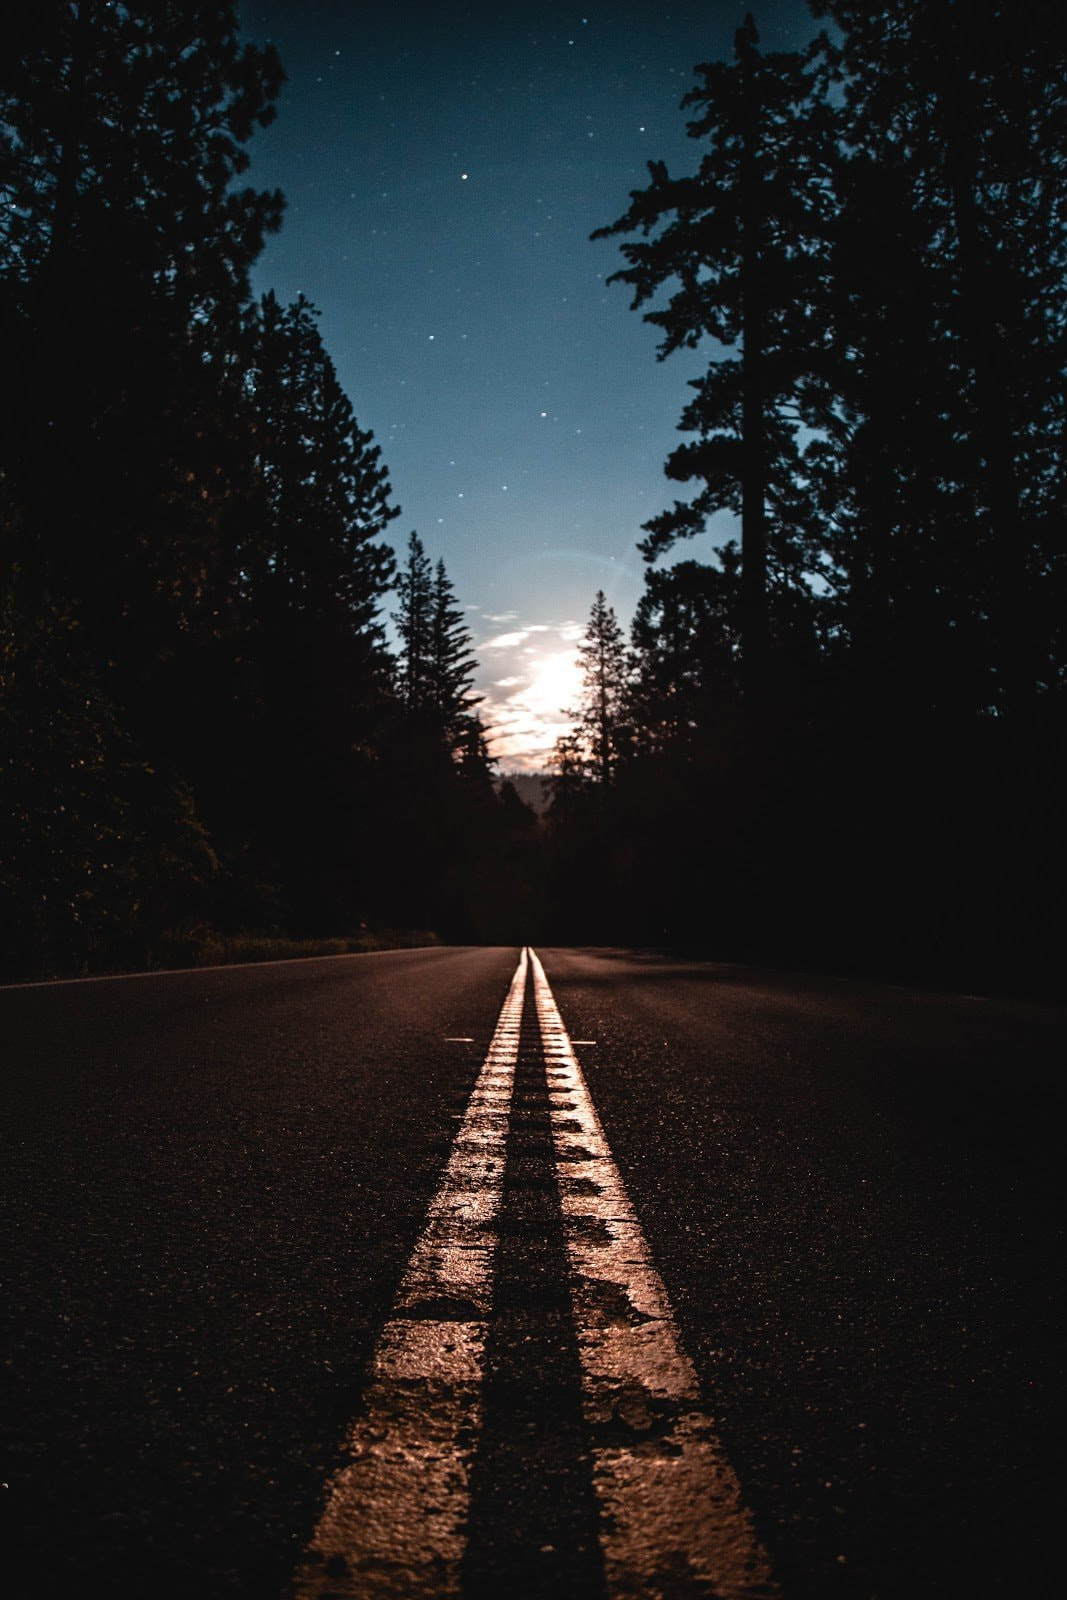 Empty road bordered by trees at night by Jake Blucker